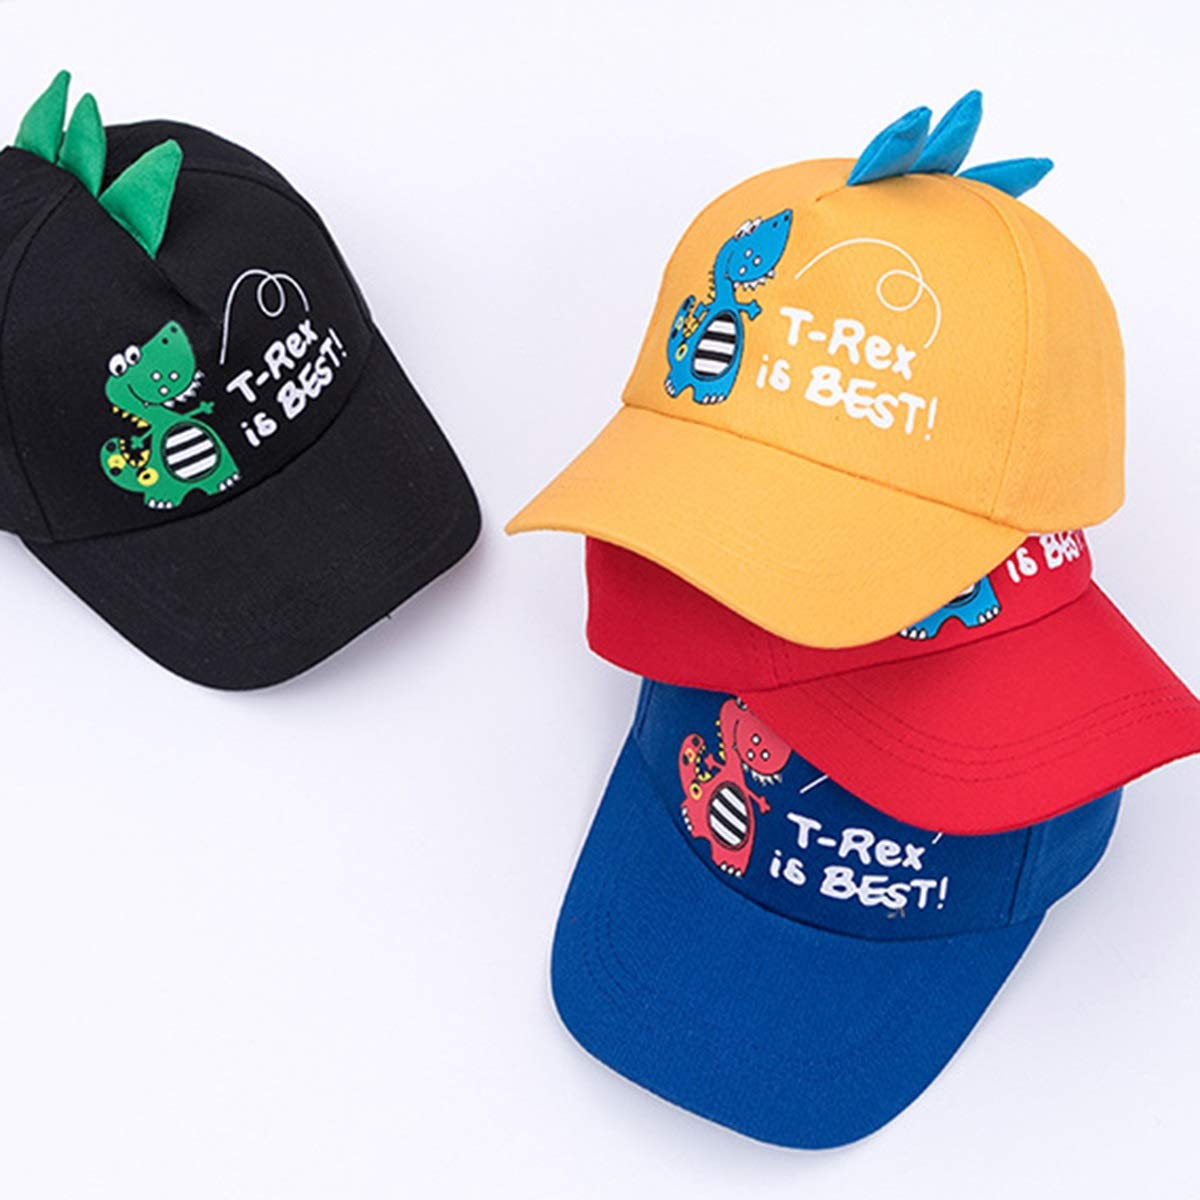 puseky Kids Boys Girls Cute Dinosaur Printed Adjustable Baseball Cap Cartoon Fashion Sun Hat